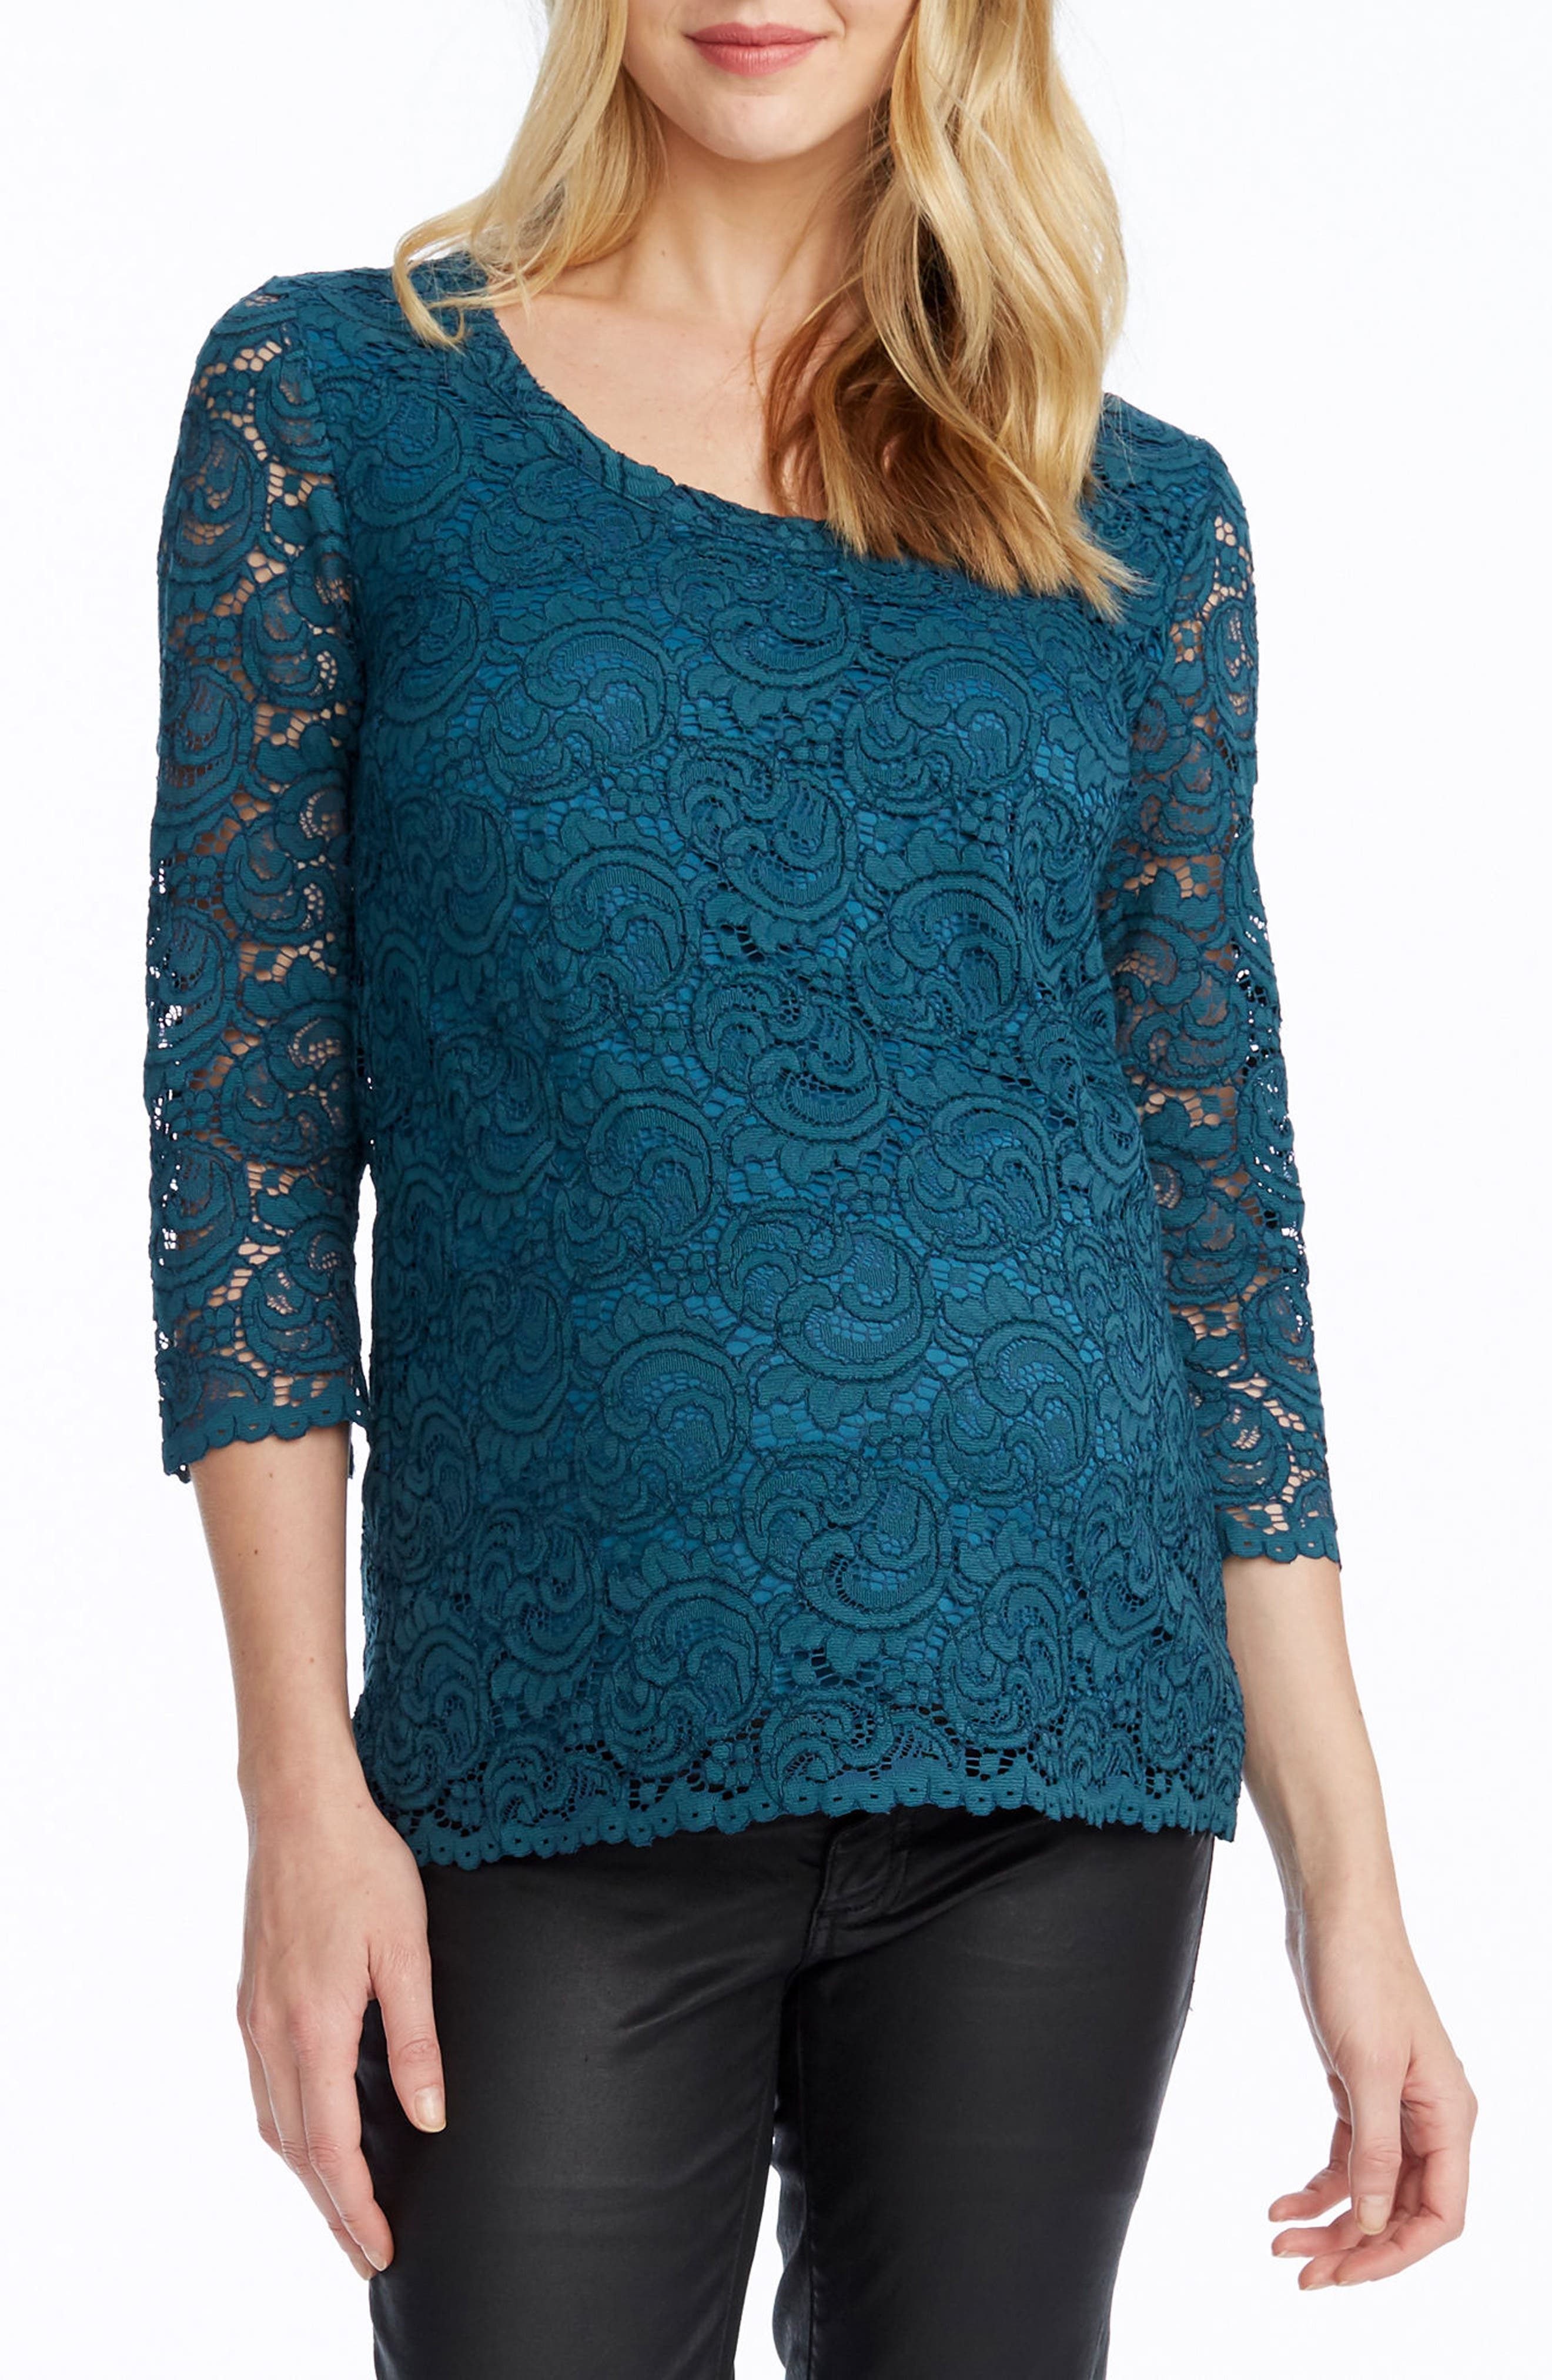 Rosie Pope Becca Lace Maternity Top